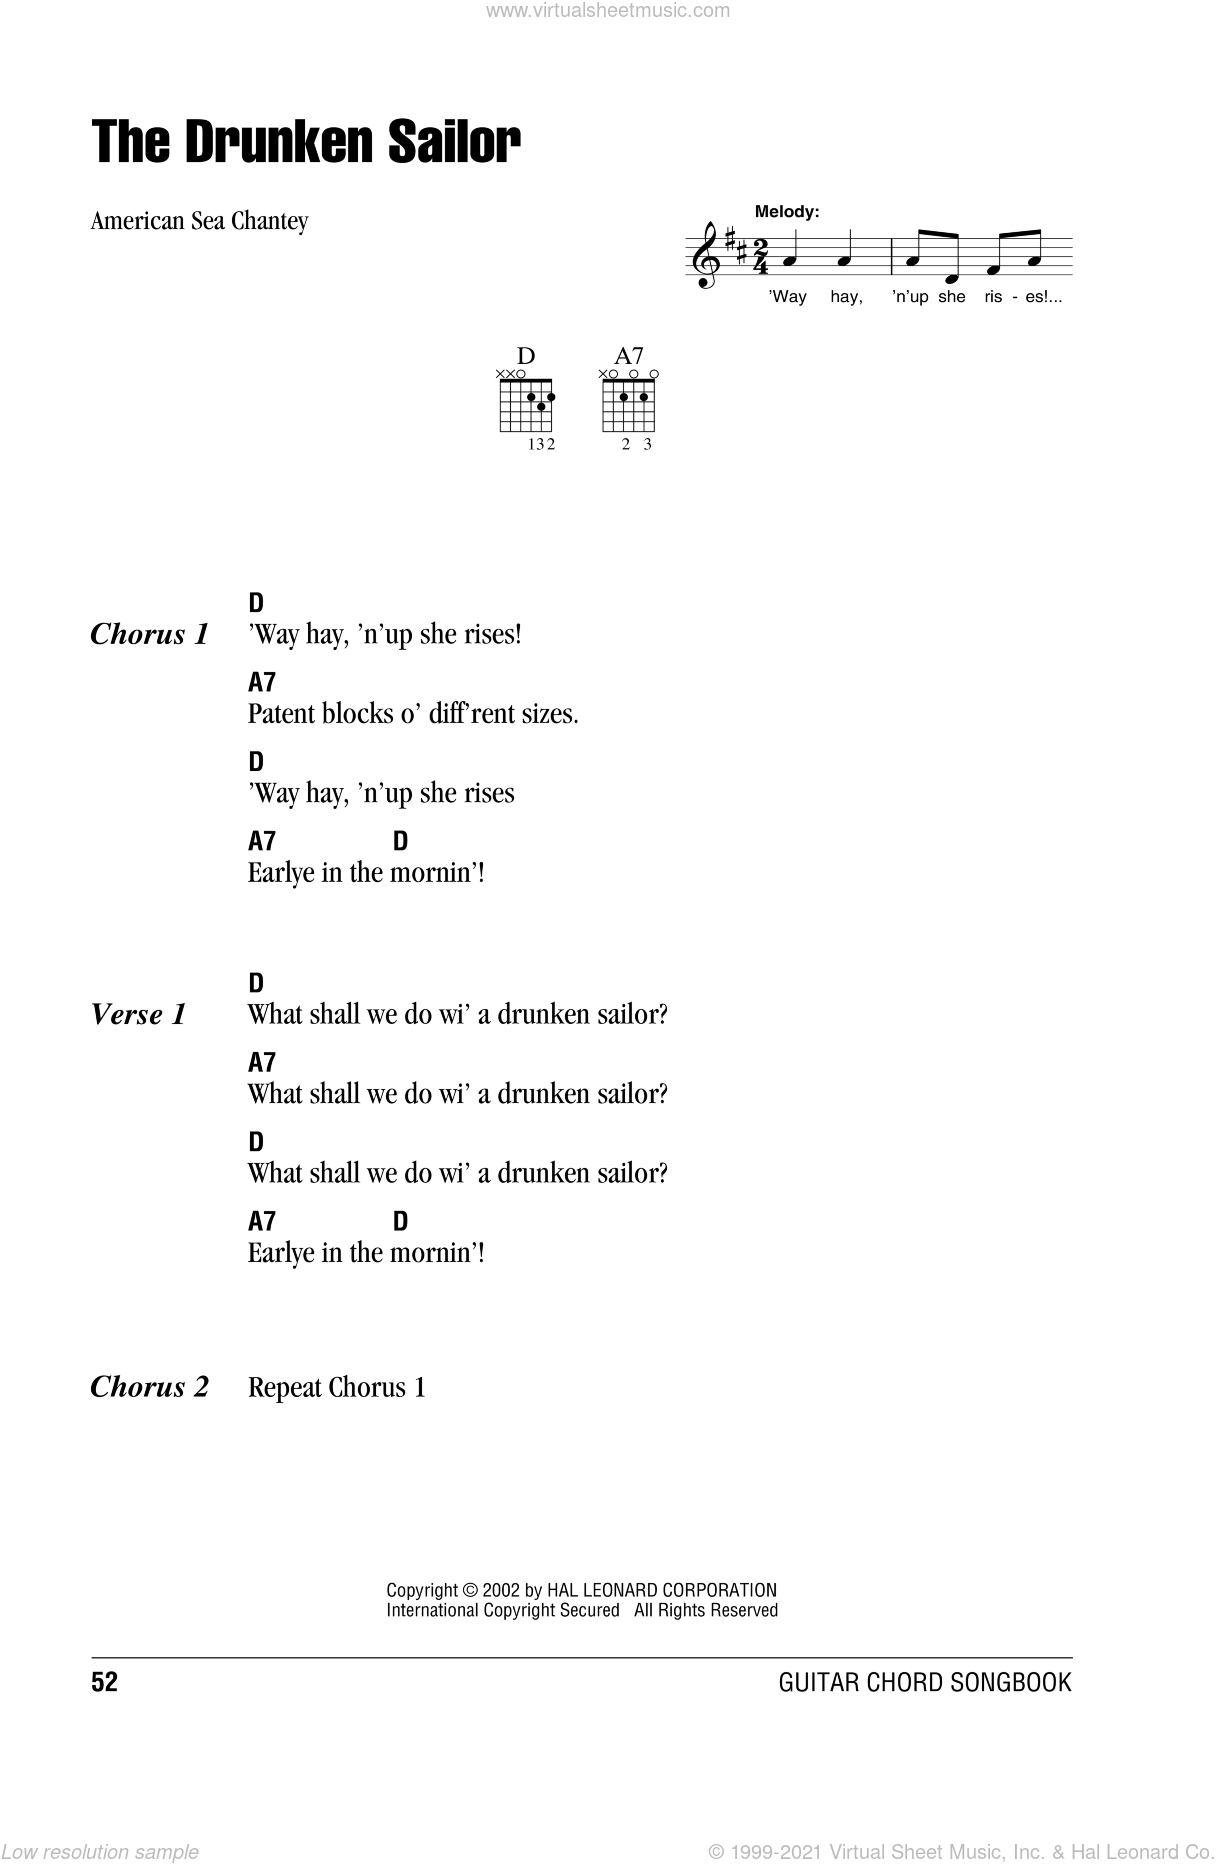 What Shall We Do With The Drunken Sailor sheet music for guitar (chords) by American Sea Chantey